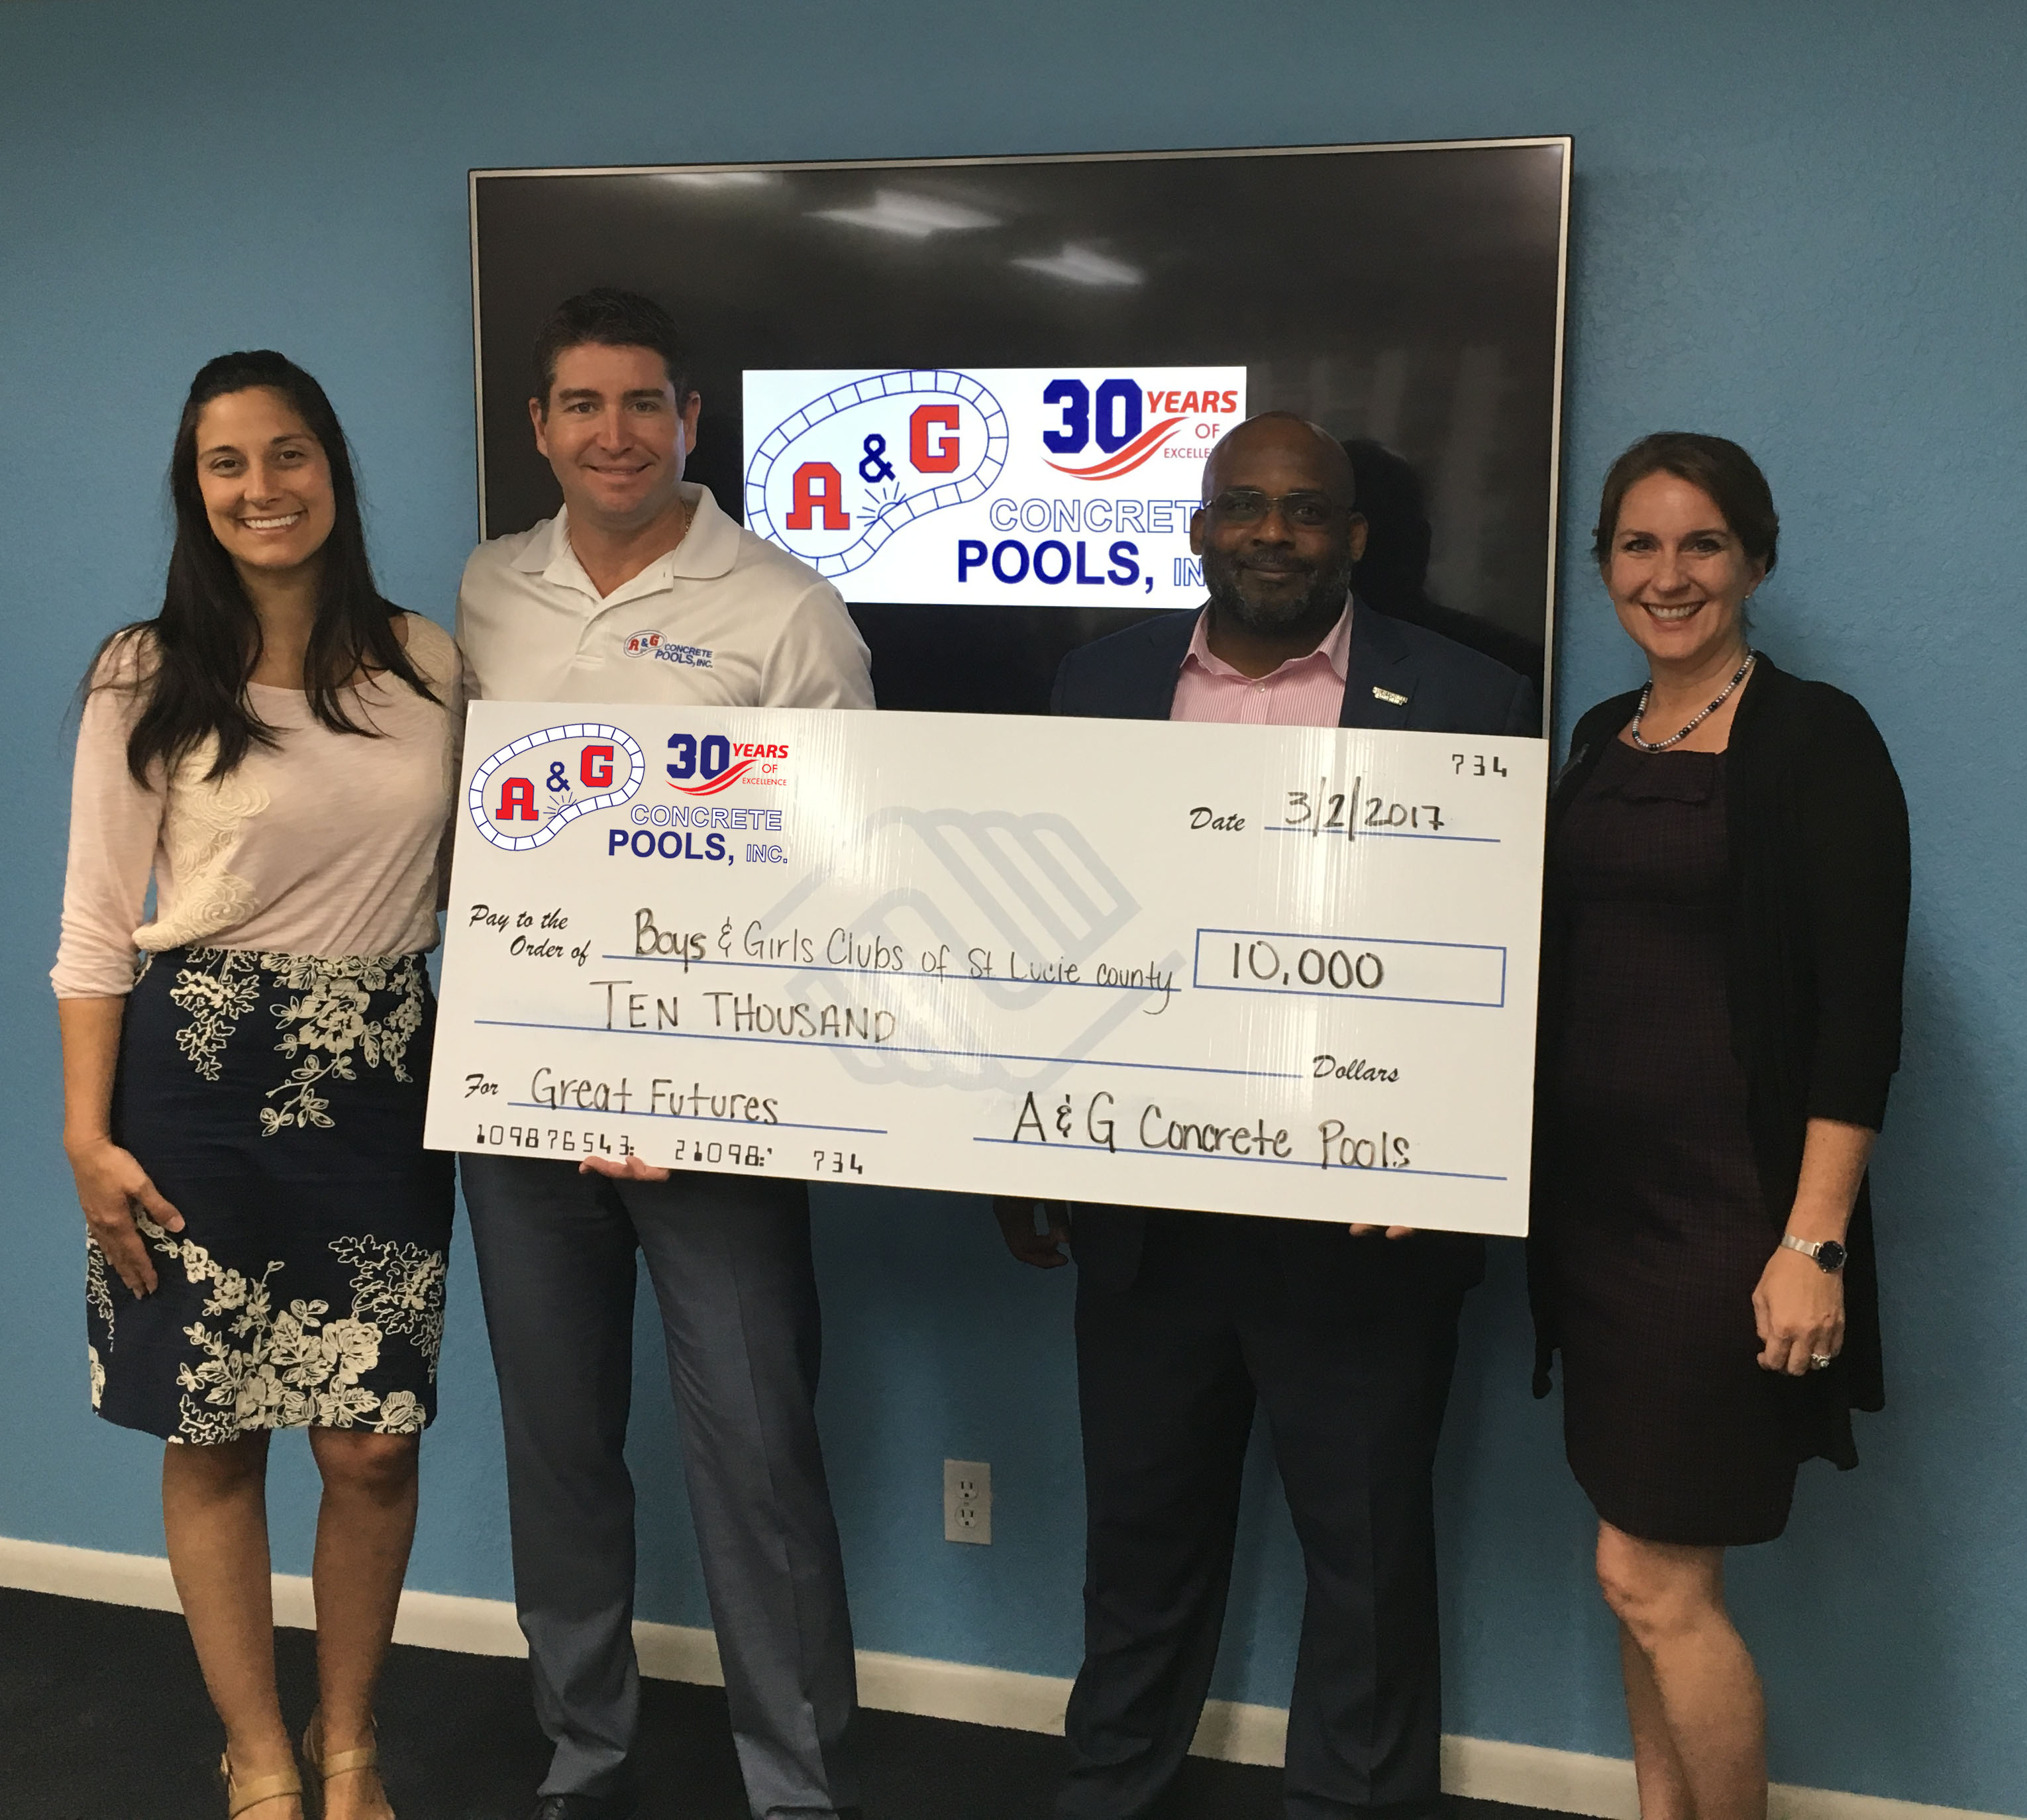 Melanie Wiles, COO Boys & Girls Clubs of St. Lucie County, Travis Leonard, CEO A&G Concrete Pools Inc., William Armstead, CEO Boys & Girls Clubs of St. Lucie County, Toyan Hall, Board Member of Boys & Girls Clubs of St. Lucie County.